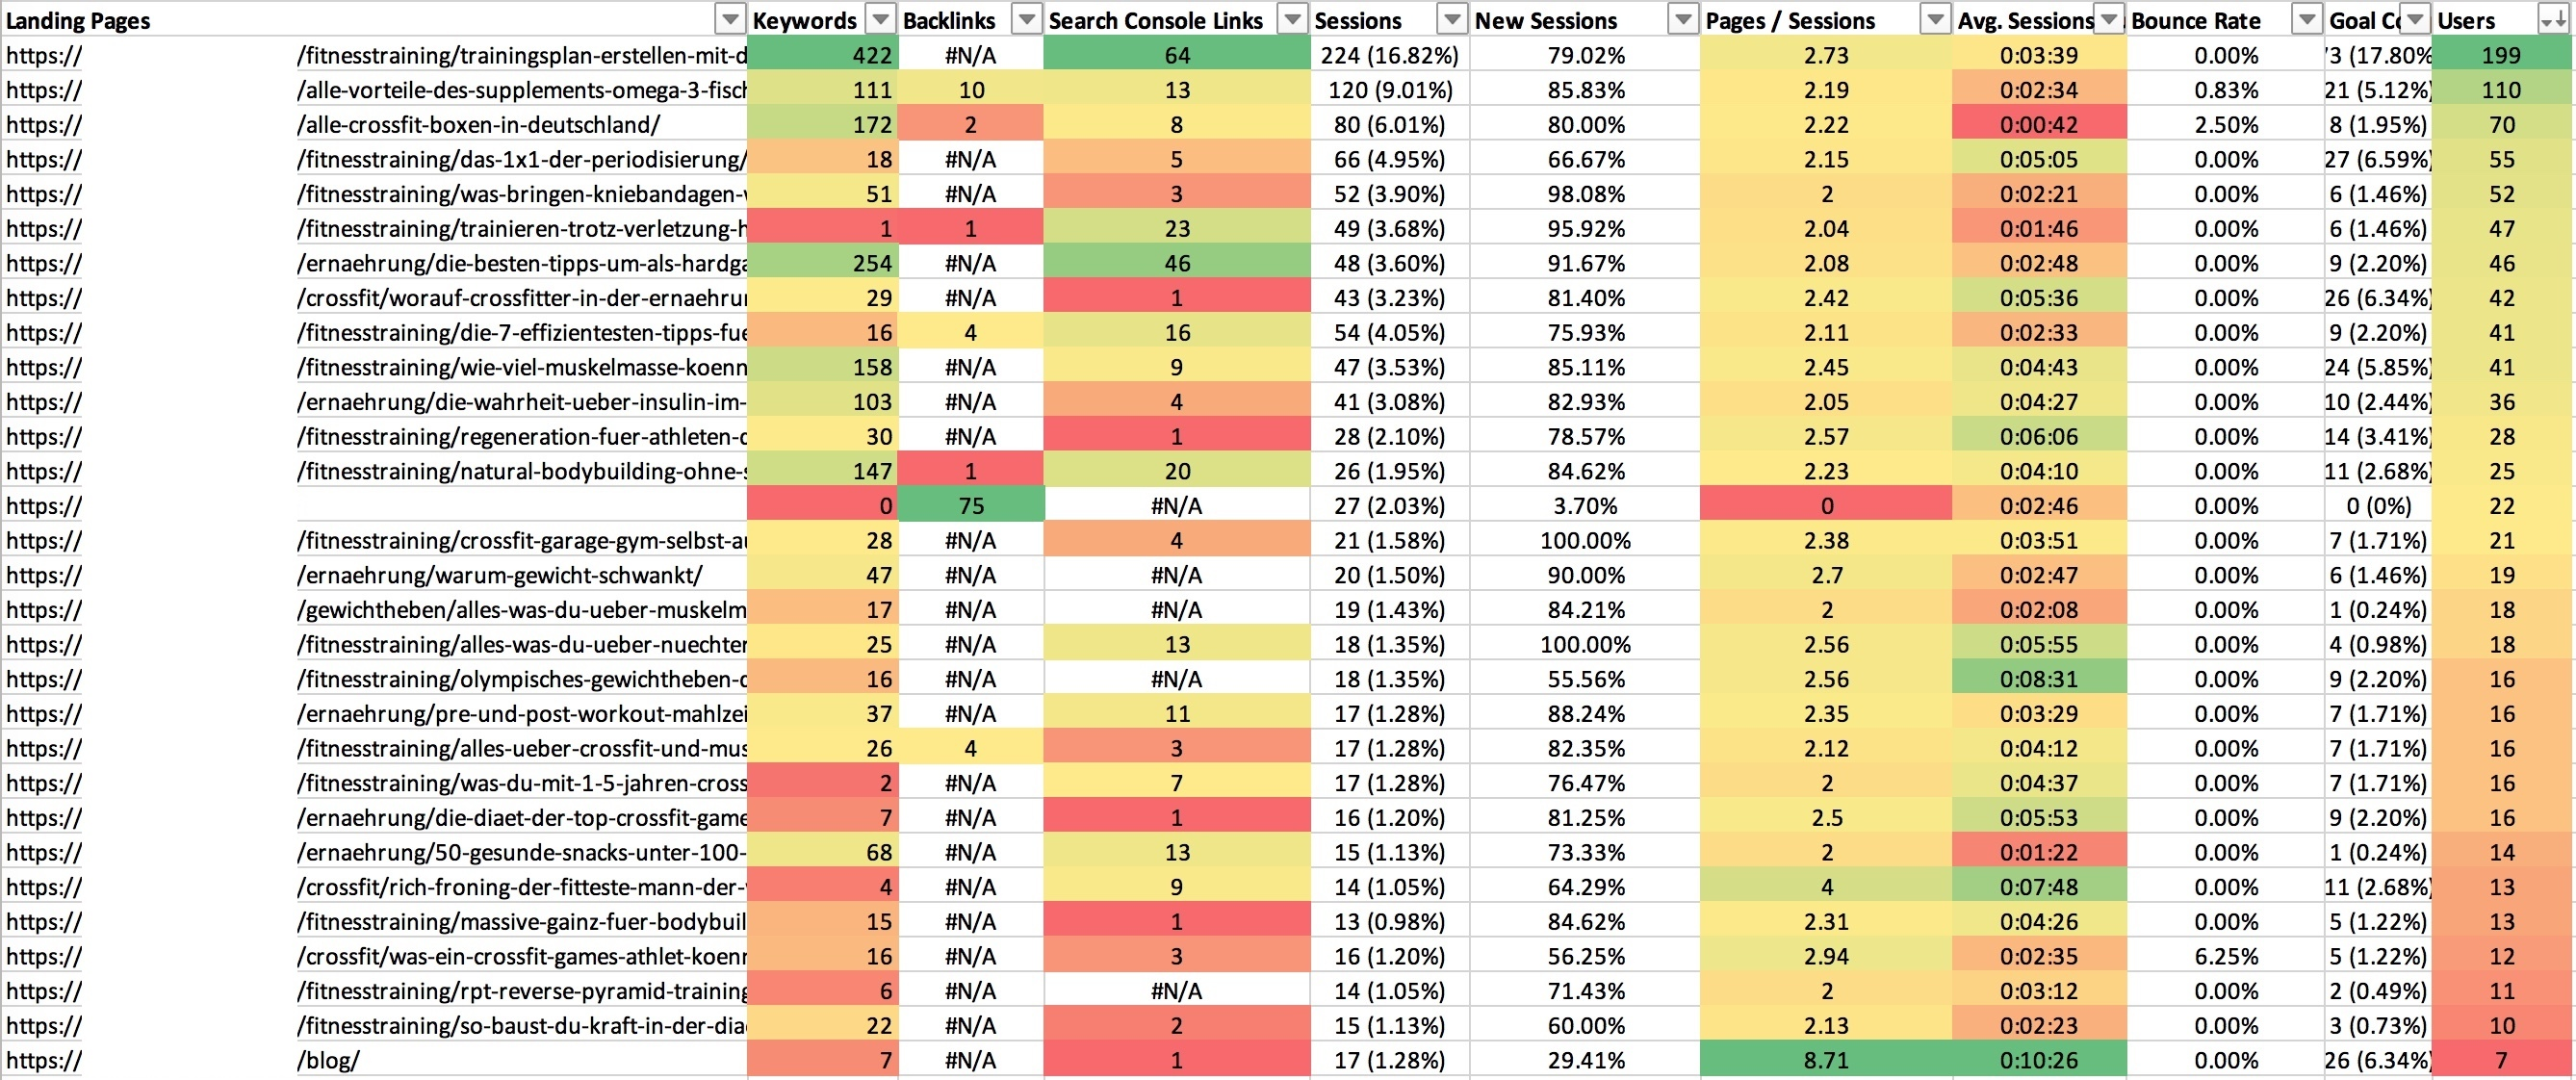 spreadsheet-finished-overview.jpeg